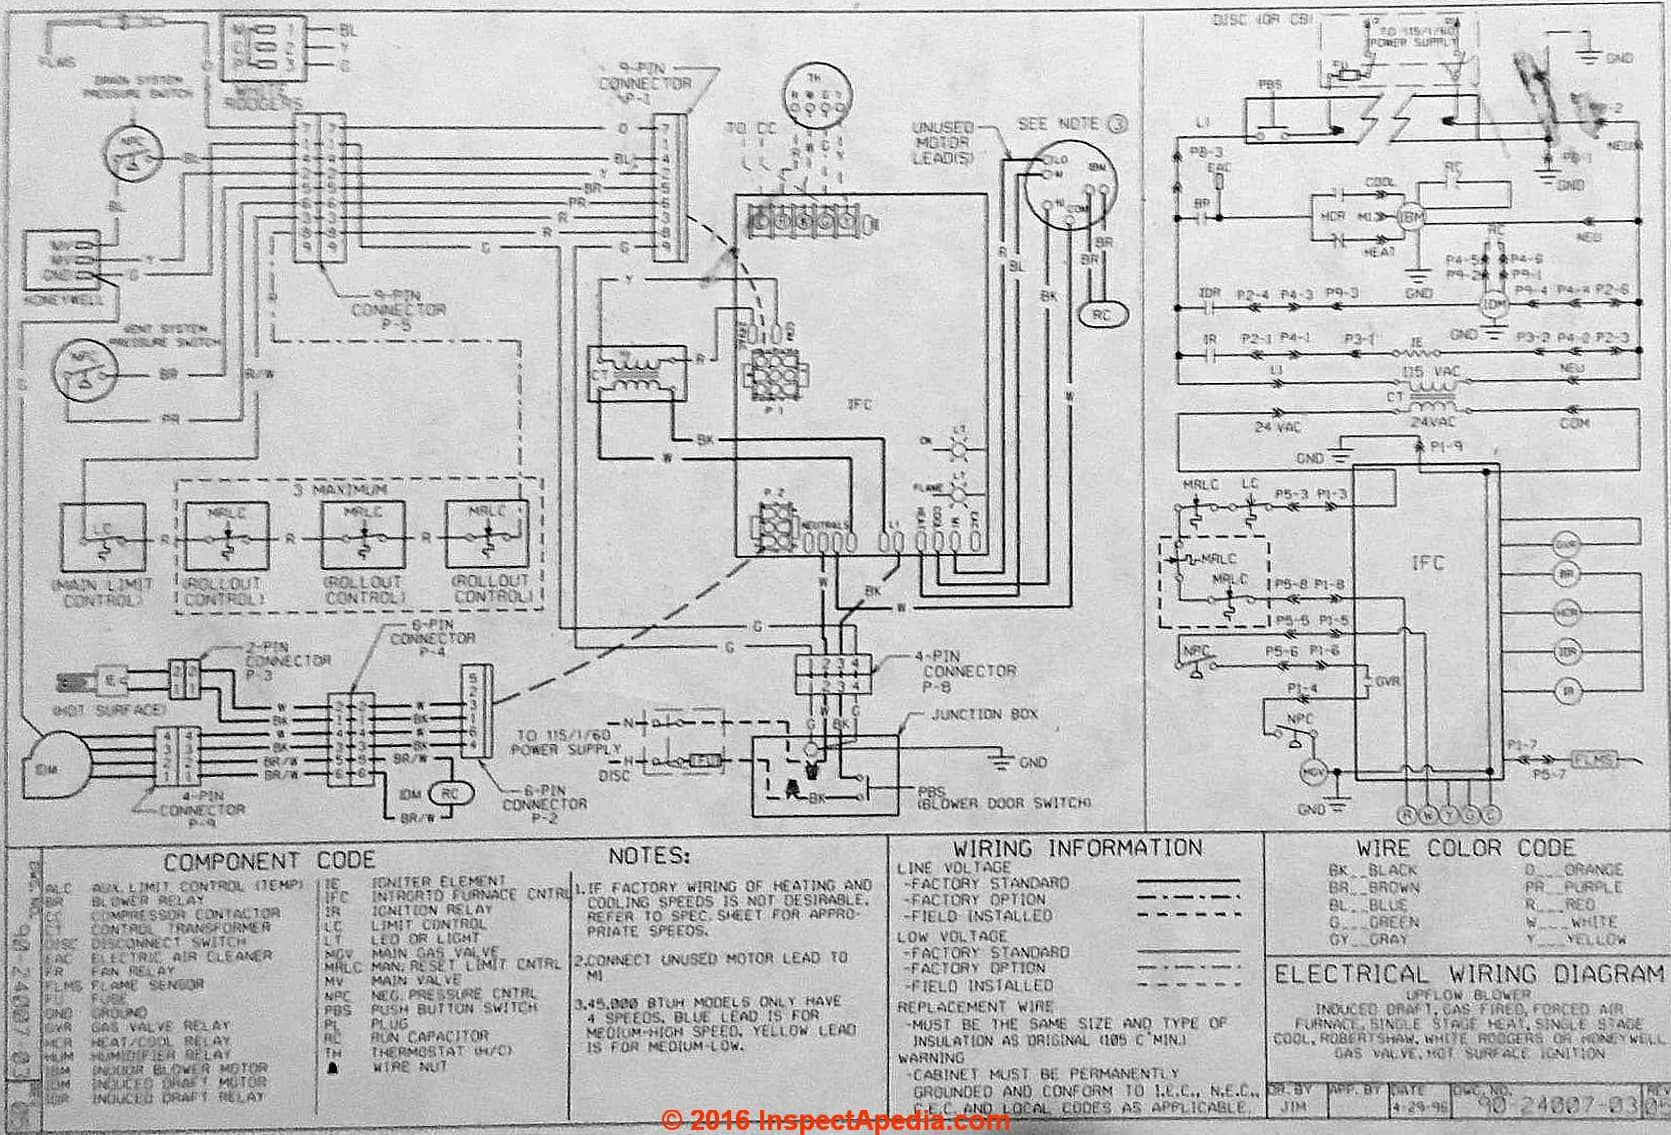 rheem air conditioner thermostat wiring diagram mobile home heat pump faqs